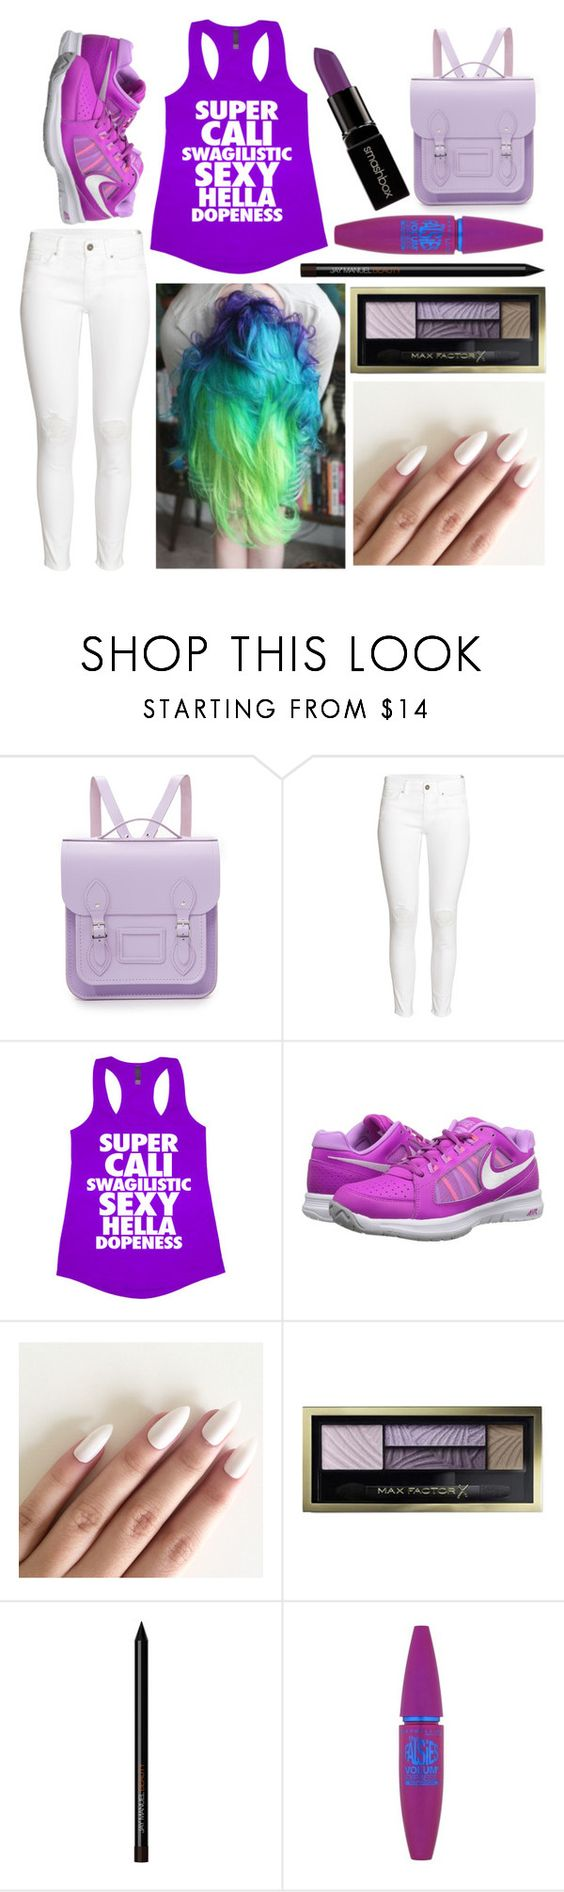 """""""Amber: April 28, 2016"""" by disneyfreaks39 ❤ liked on Polyvore featuring The Cambridge Satchel Company, H&M, NIKE, Max Factor, Maybelline and Smashbox"""